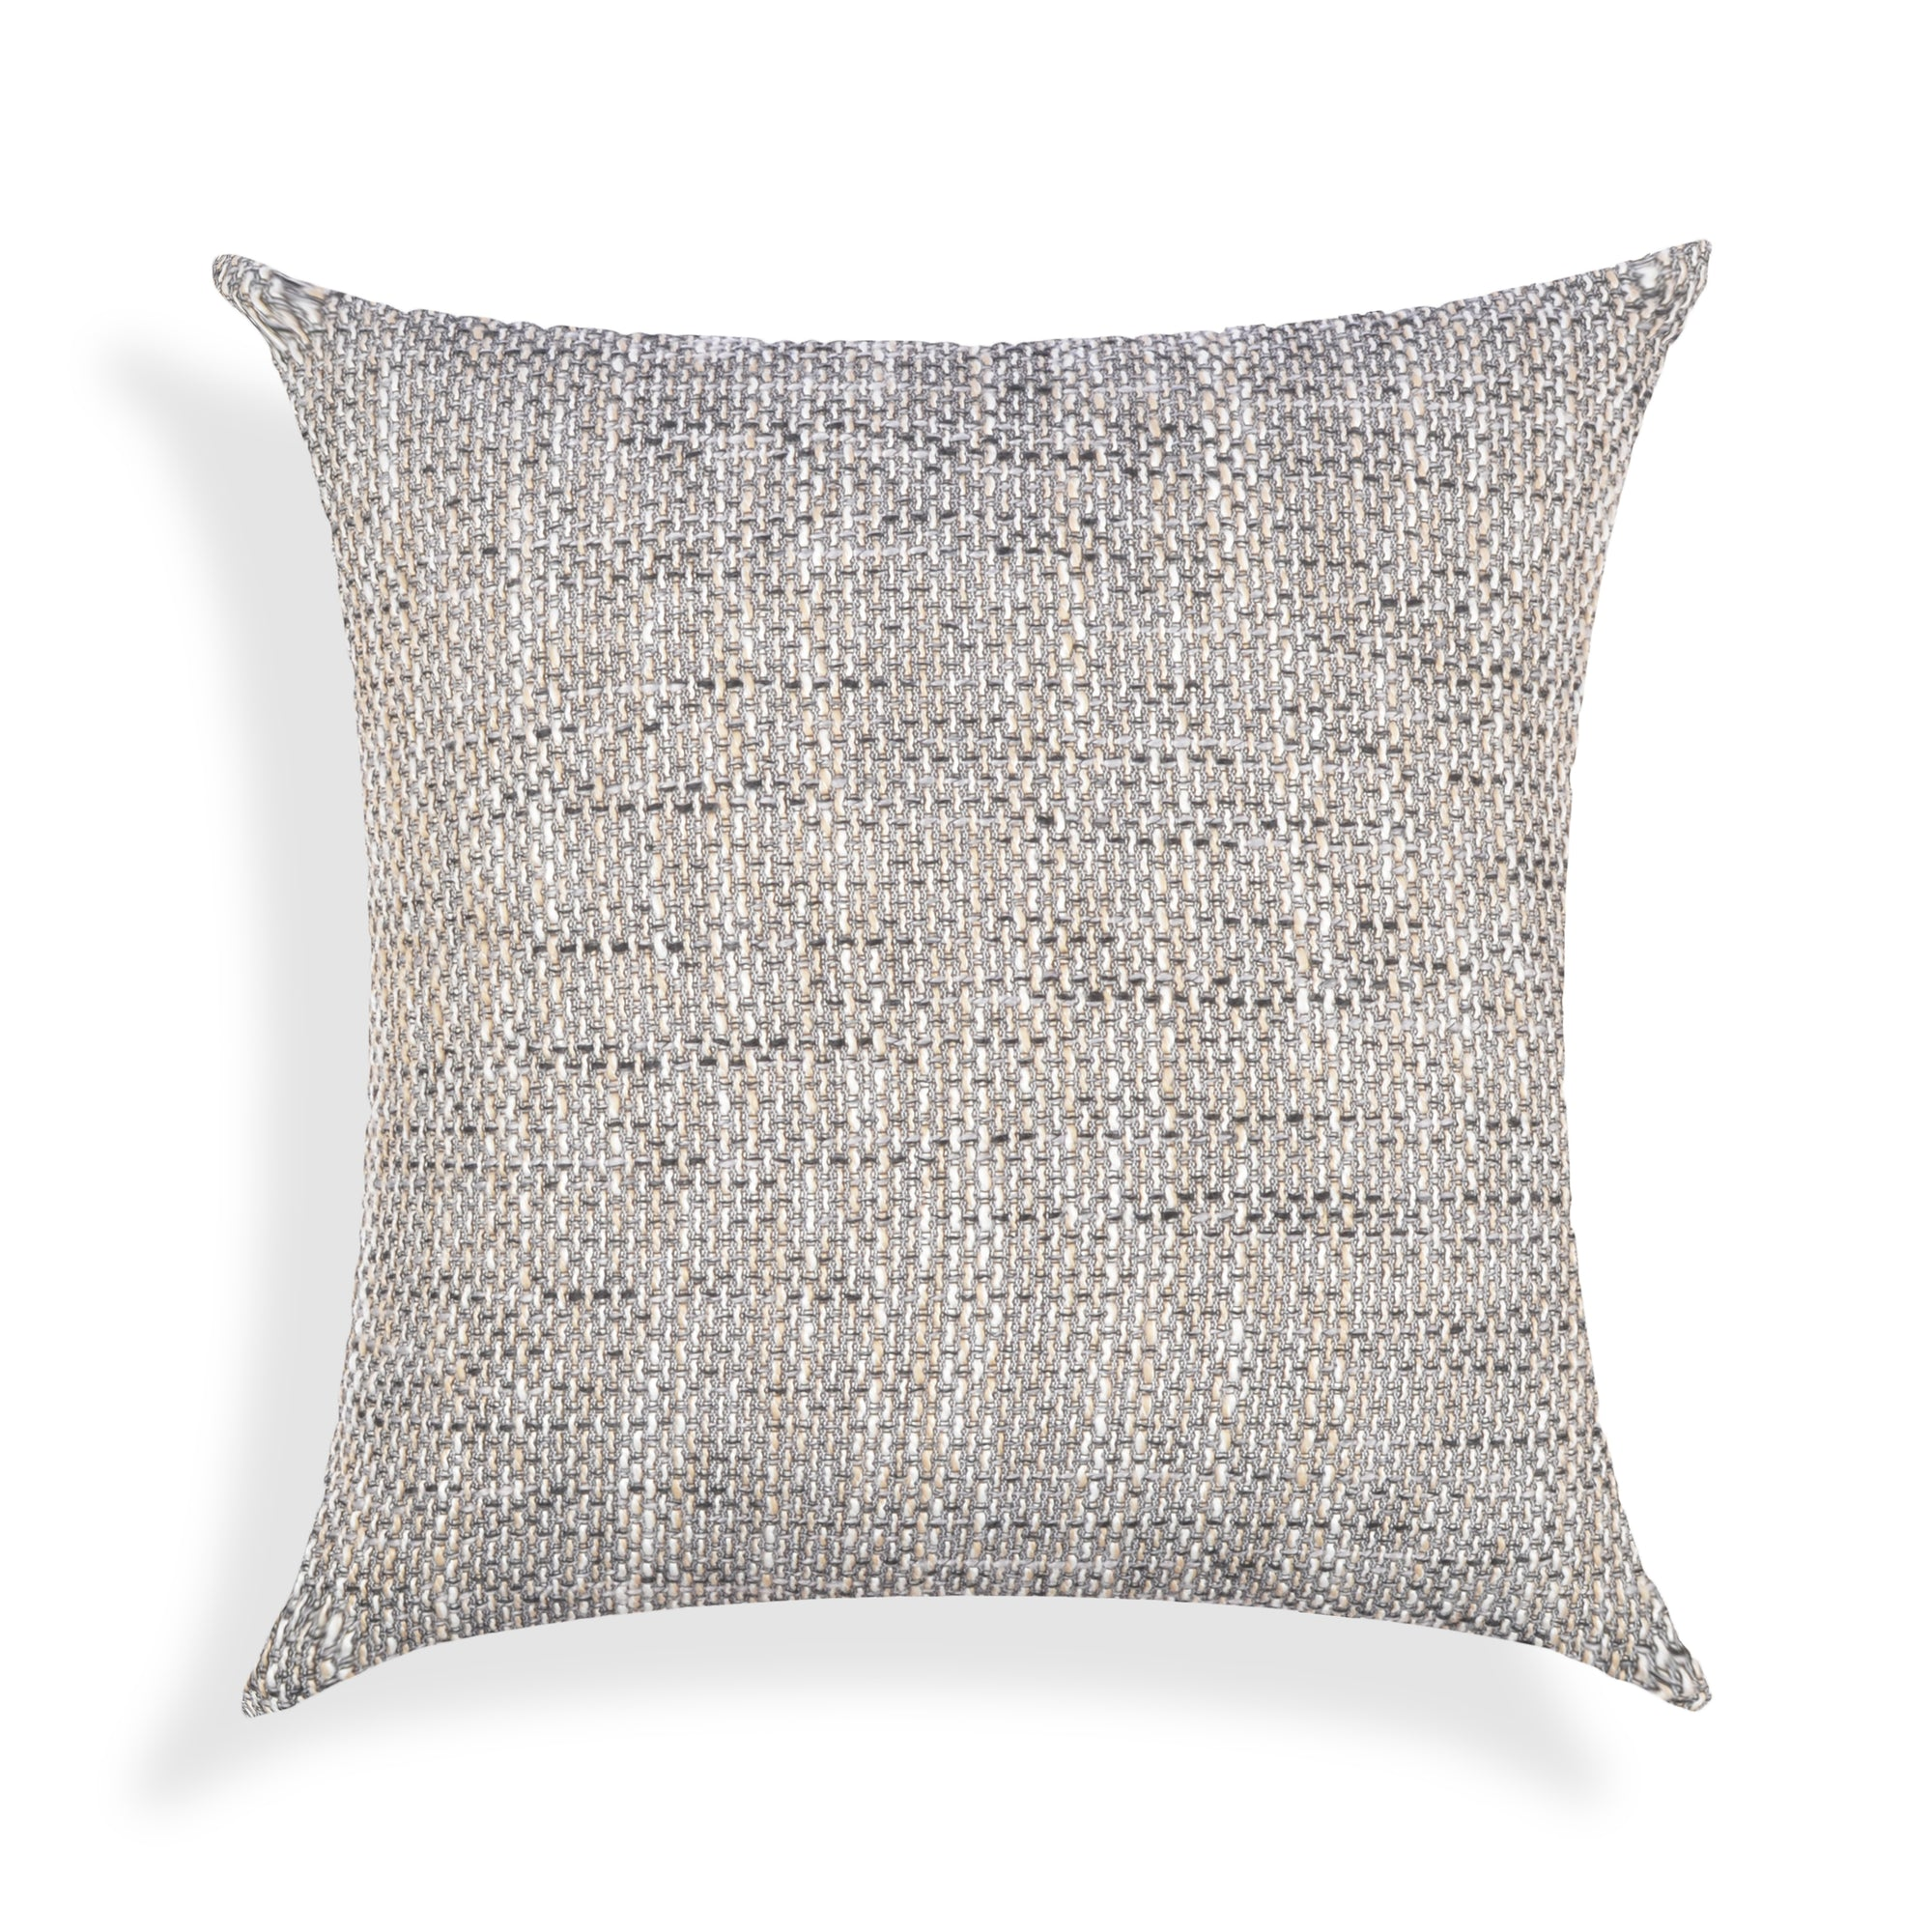 Special Doted Designed Cushion Cover